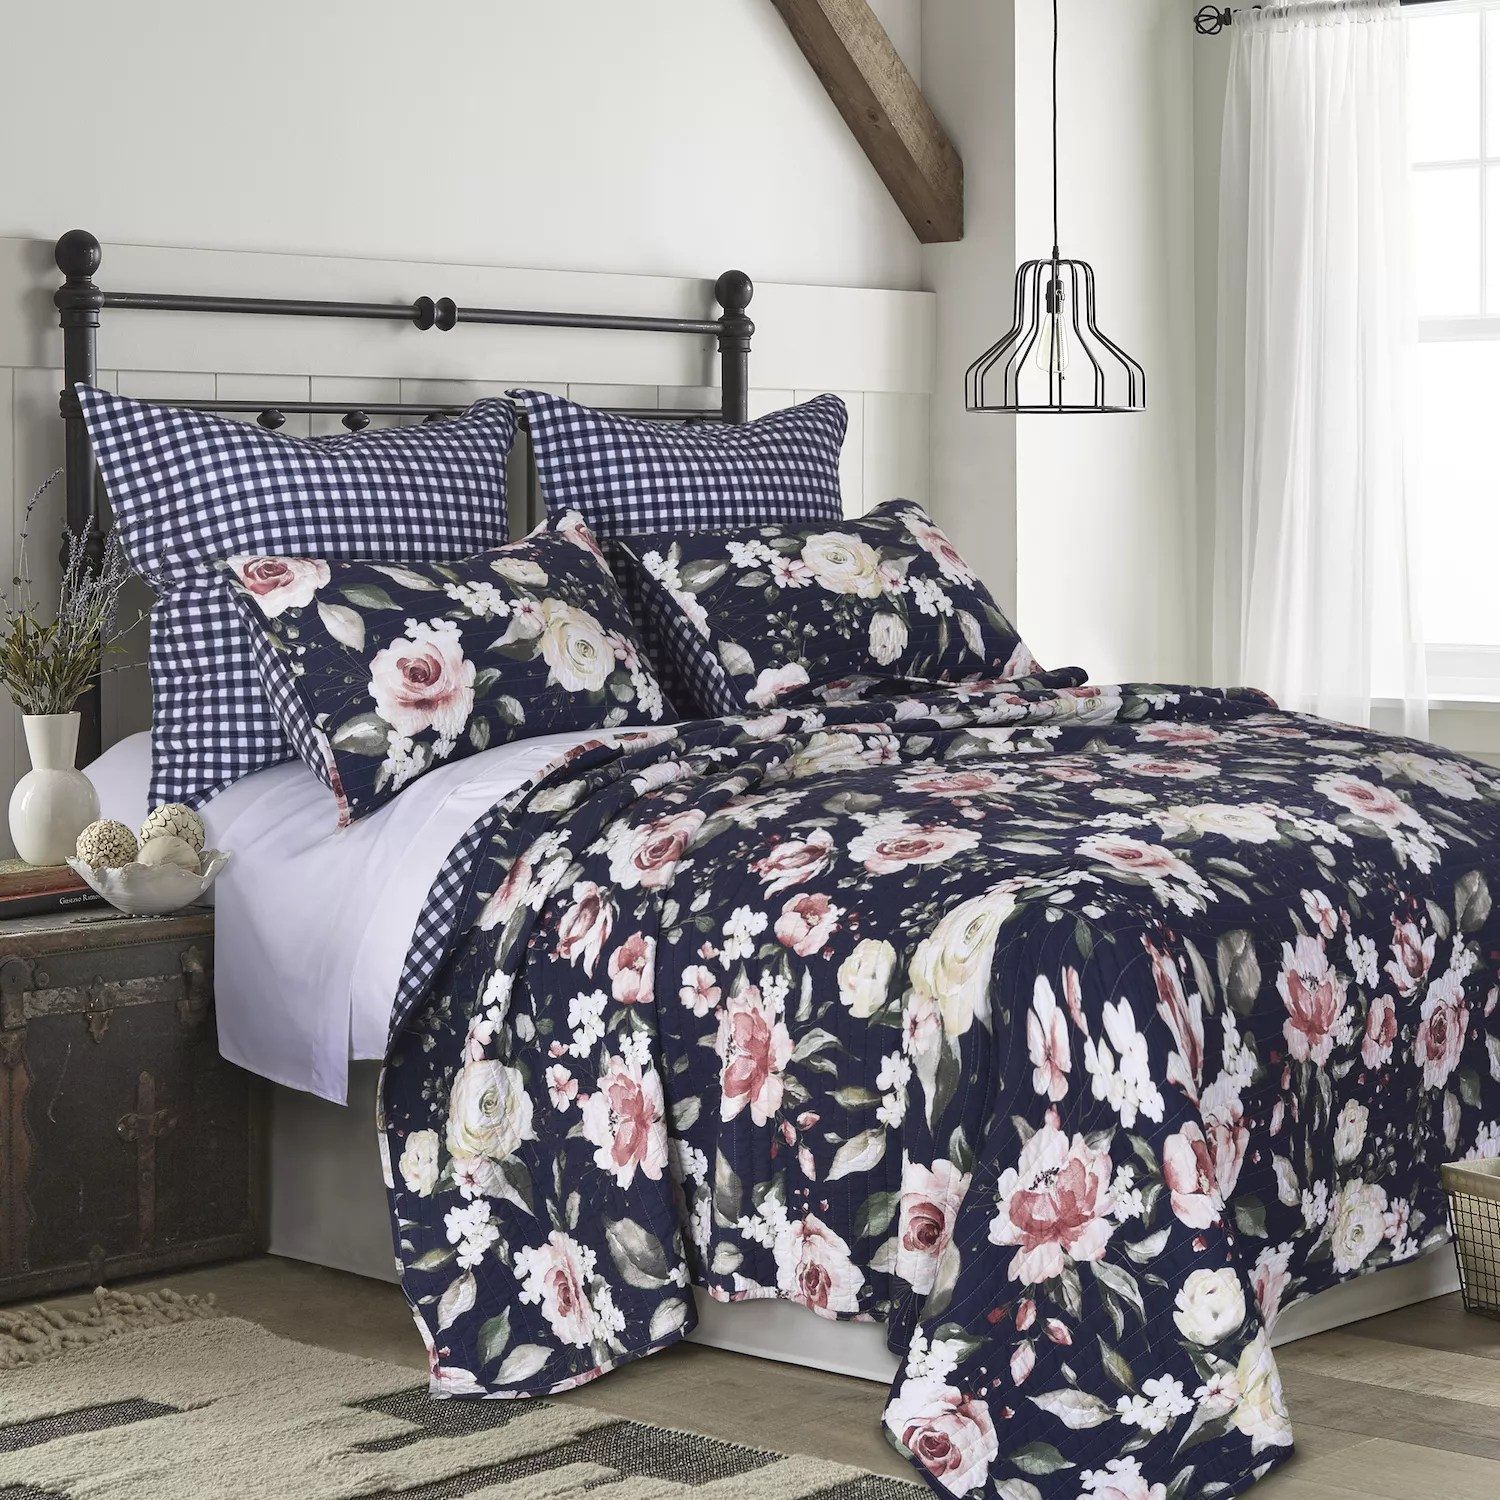 floral pillow shams bedding bed